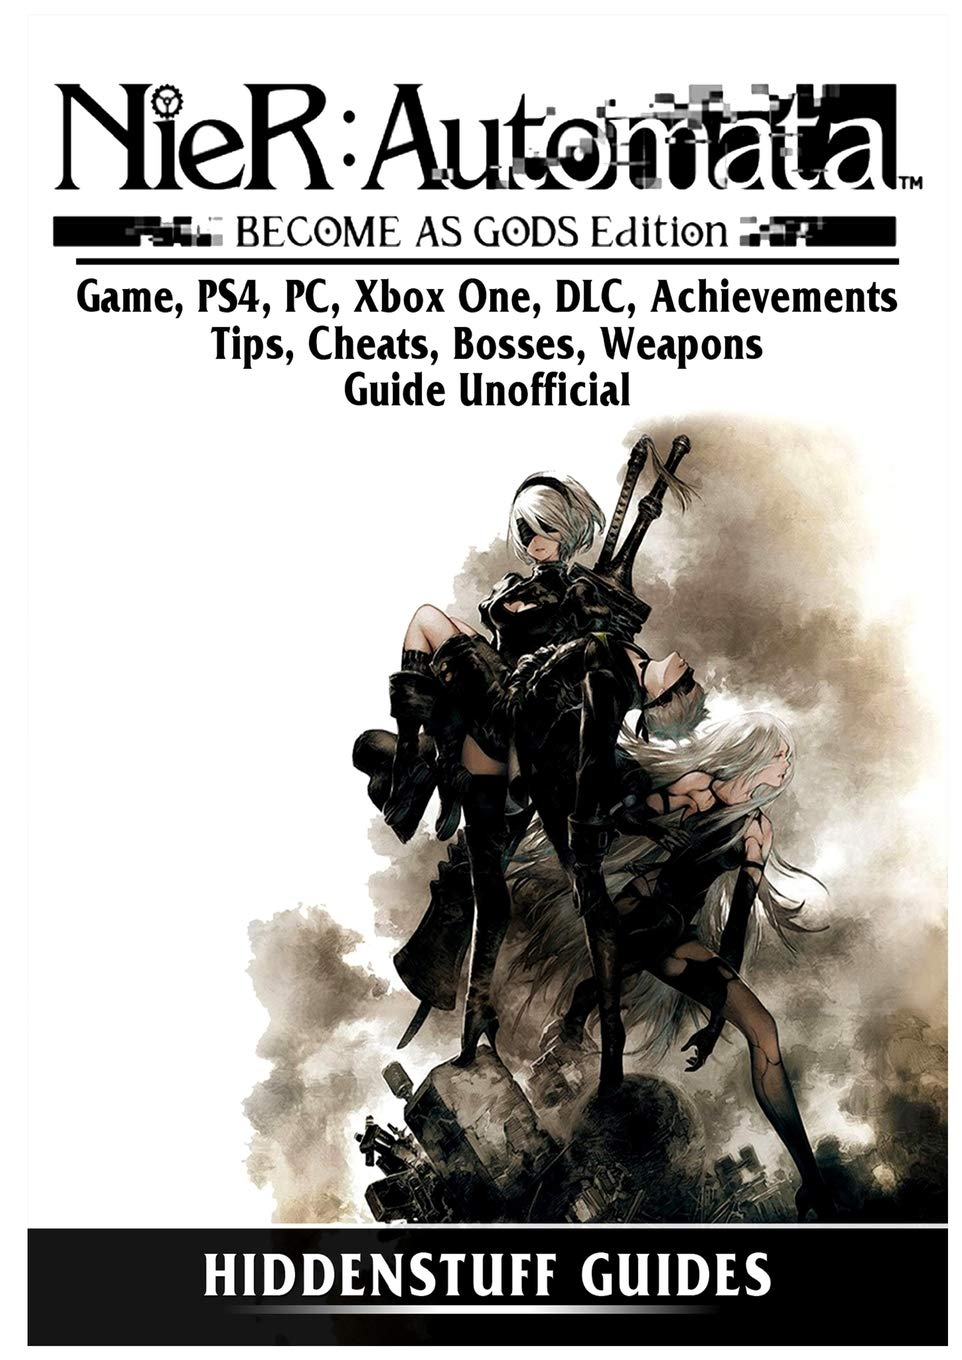 Nier Automata Become As Gods Game, PS4, PC, Xbox One, DLC, Achievements, Tips, Cheats, Bosses, Weapons, Guide Unofficial: Amazon.es: Guides, Hiddenstuff: Libros en idiomas extranjeros